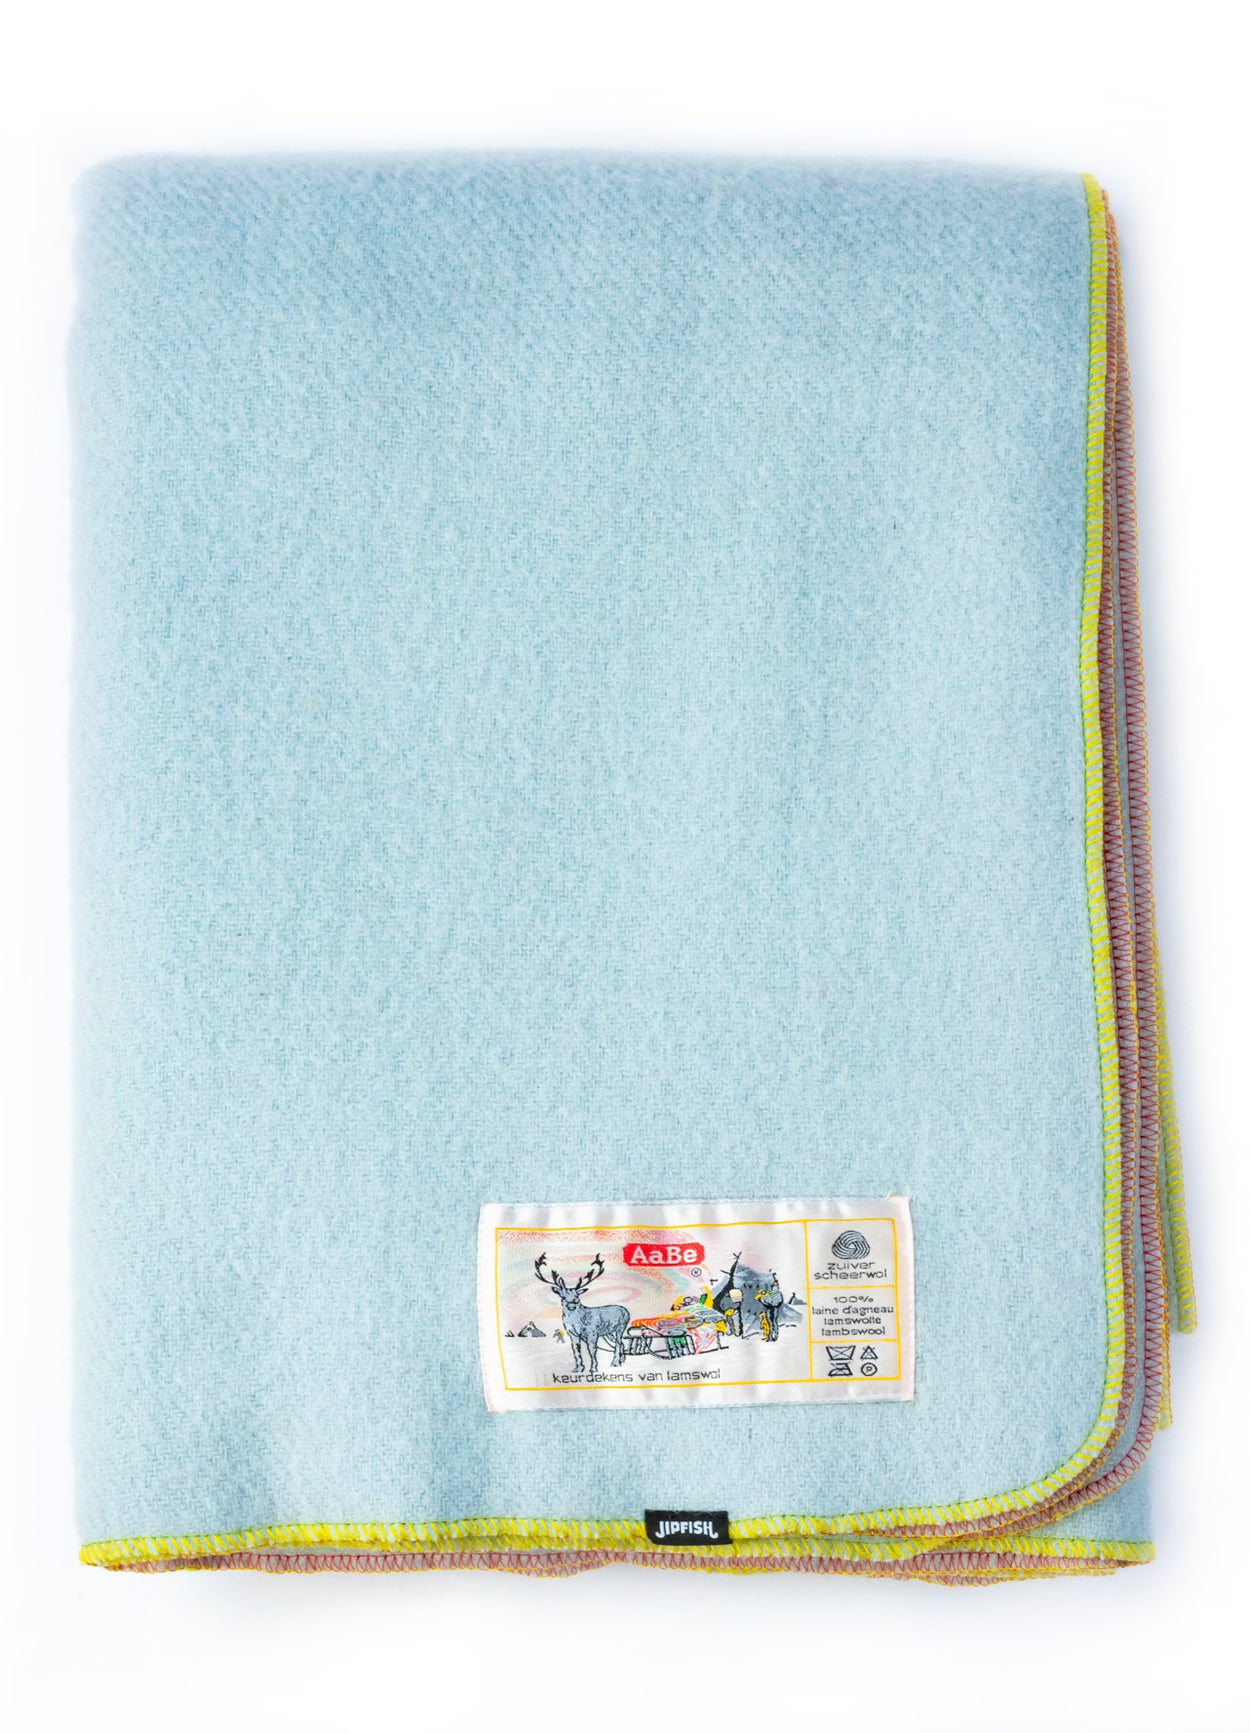 JIPFISH X AABE Lambswool Kids Blanket - FROSTY BLUE